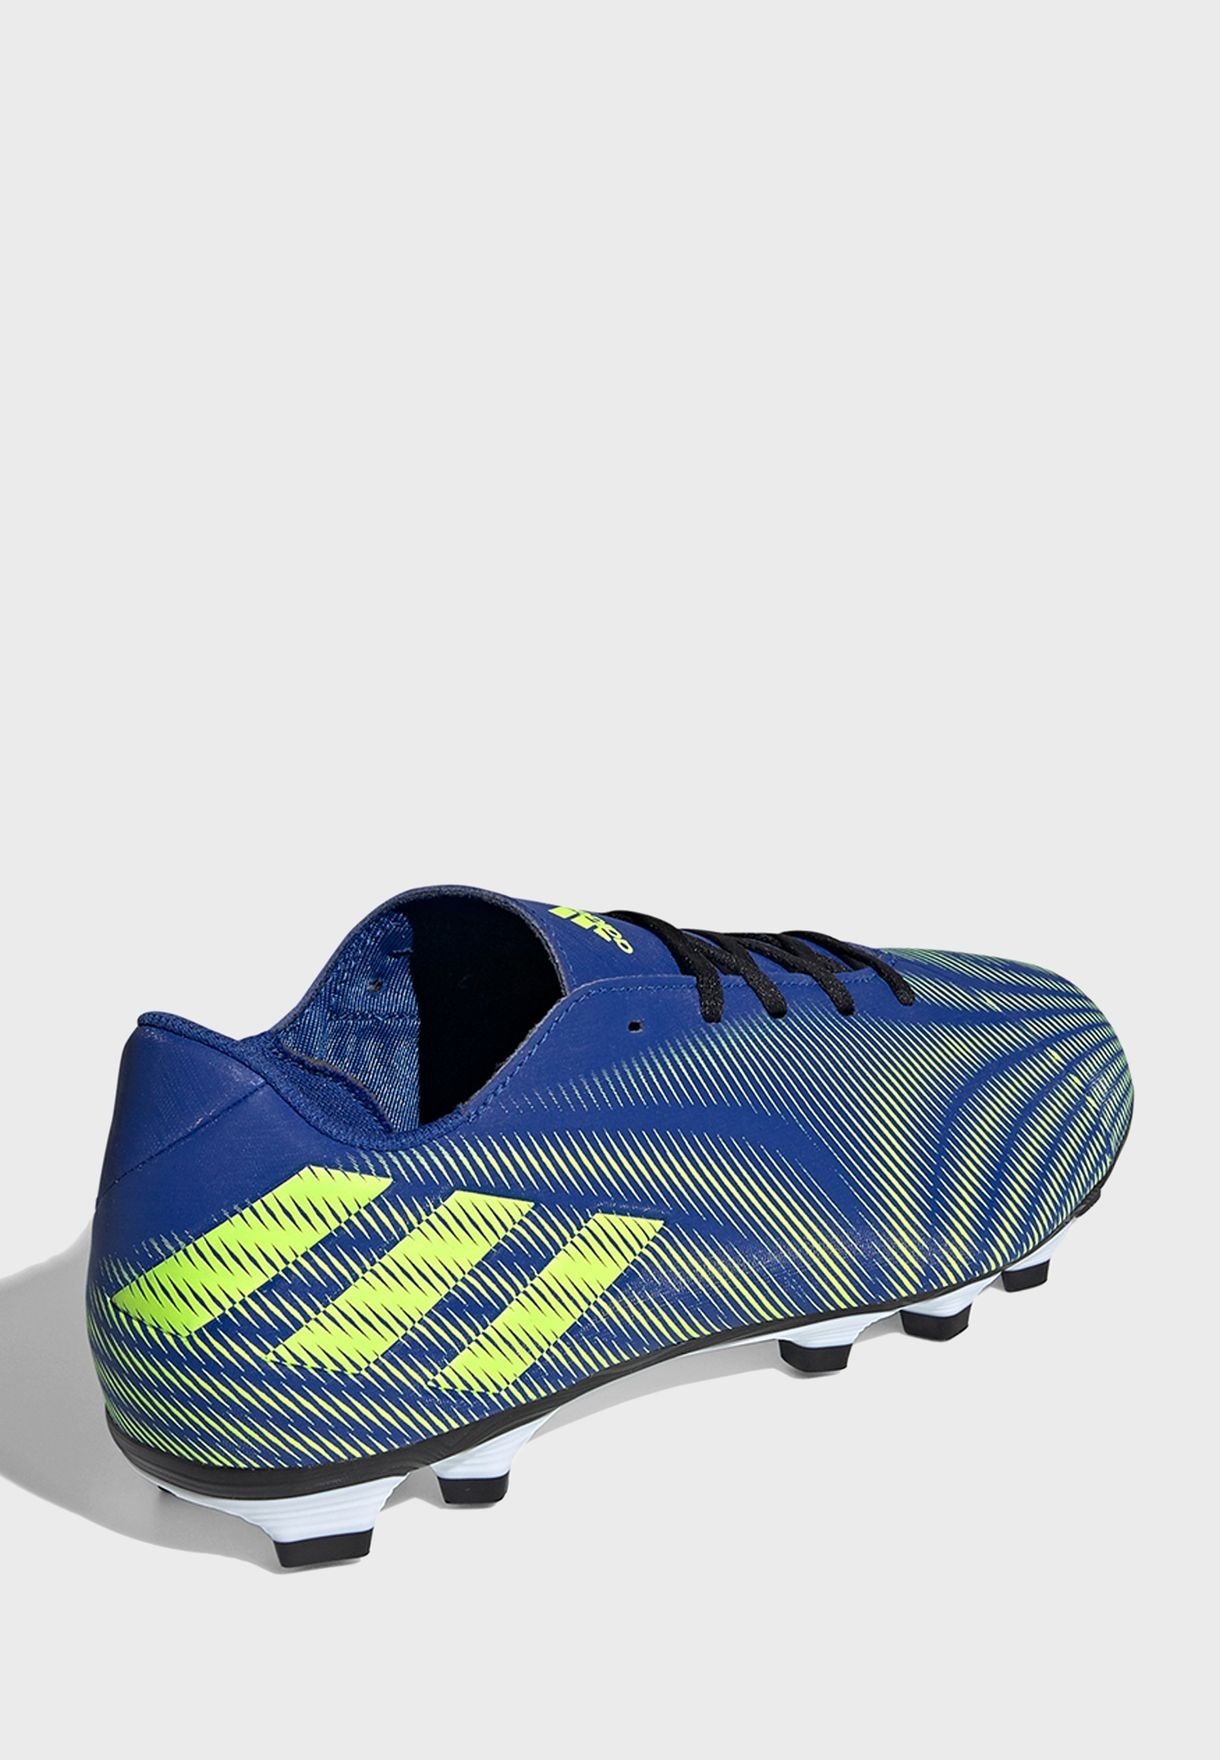 Nemeziz .4 Firm Ground